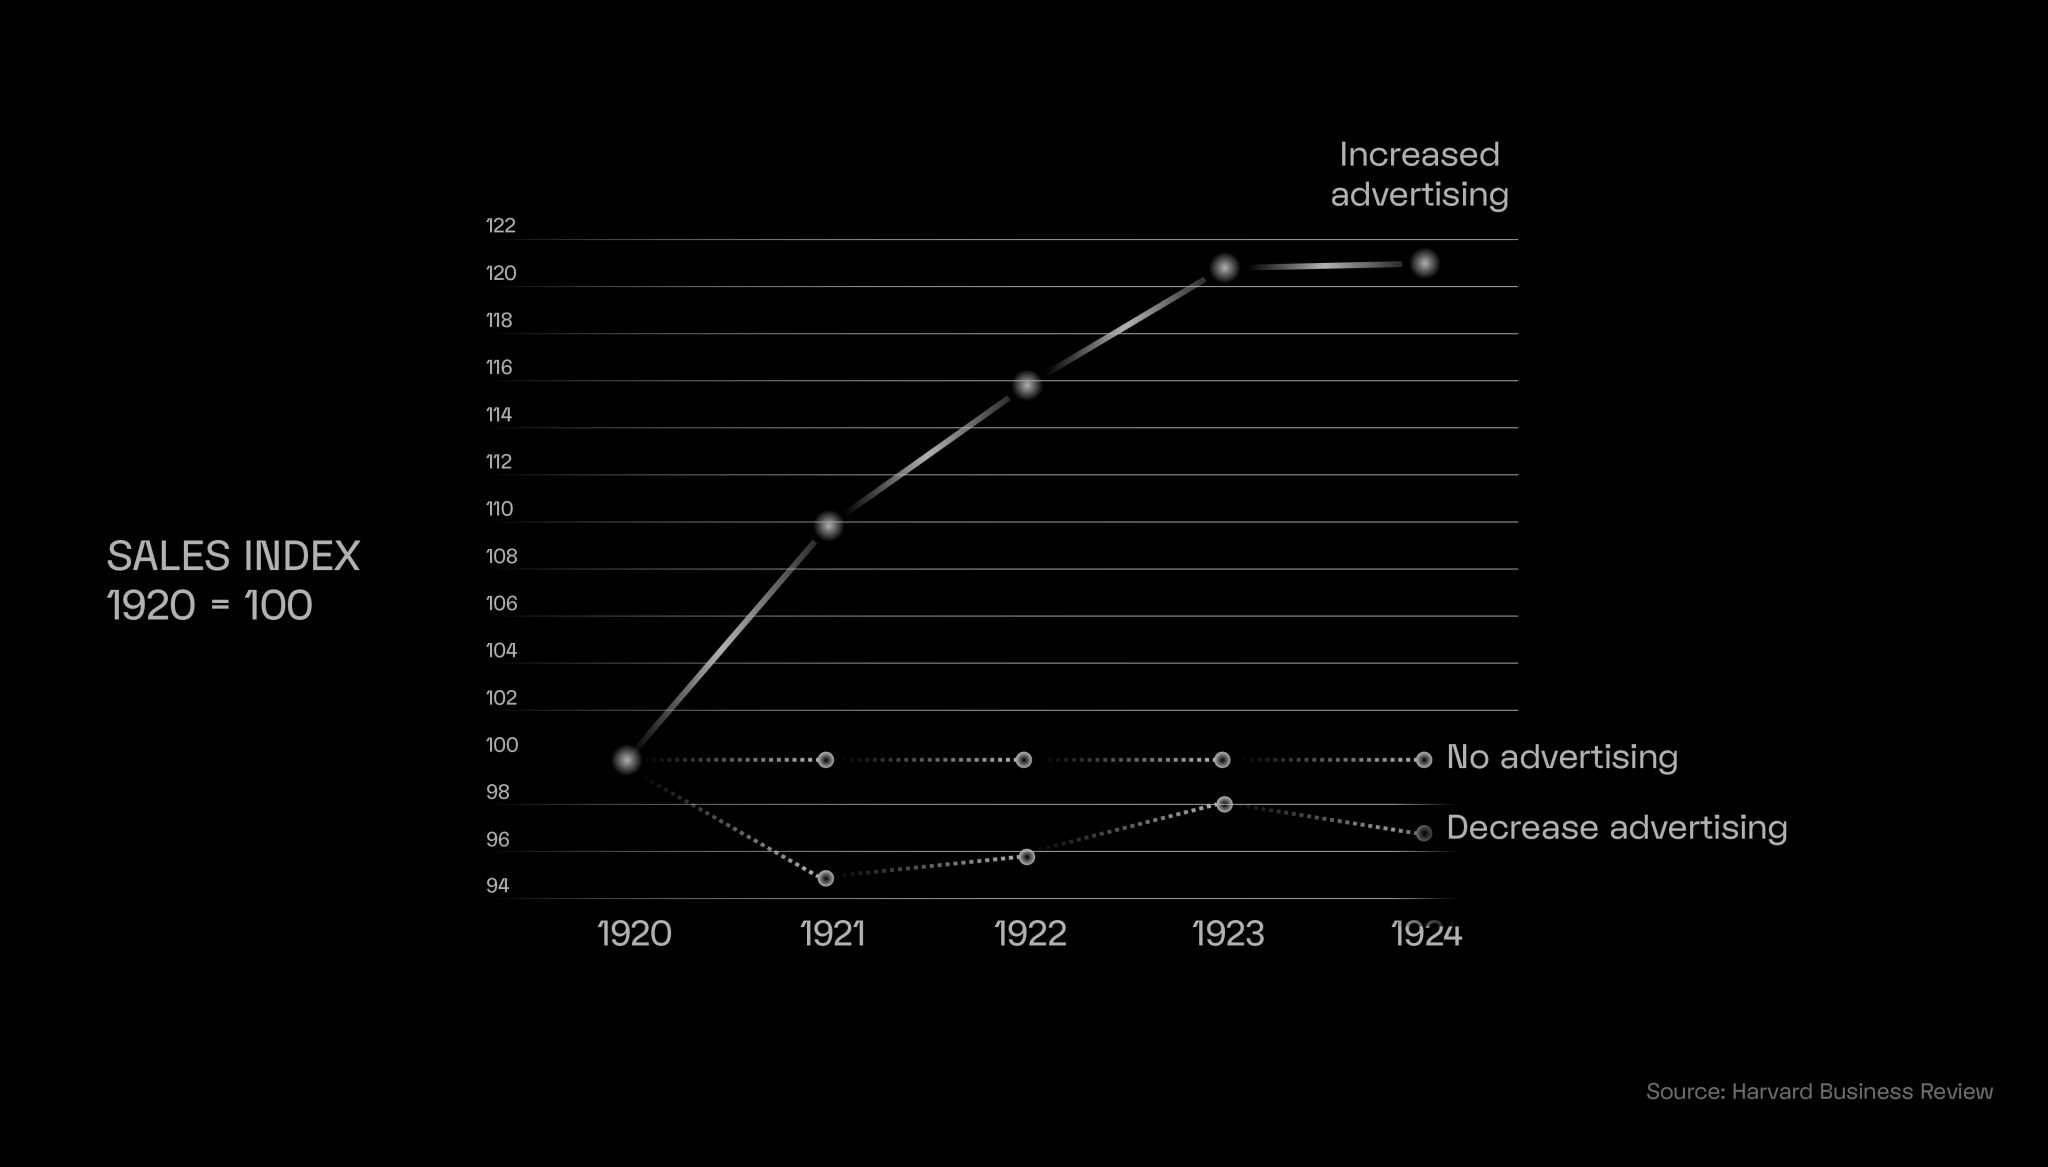 Chart showing the use of advertiisng during the 1920s great depression